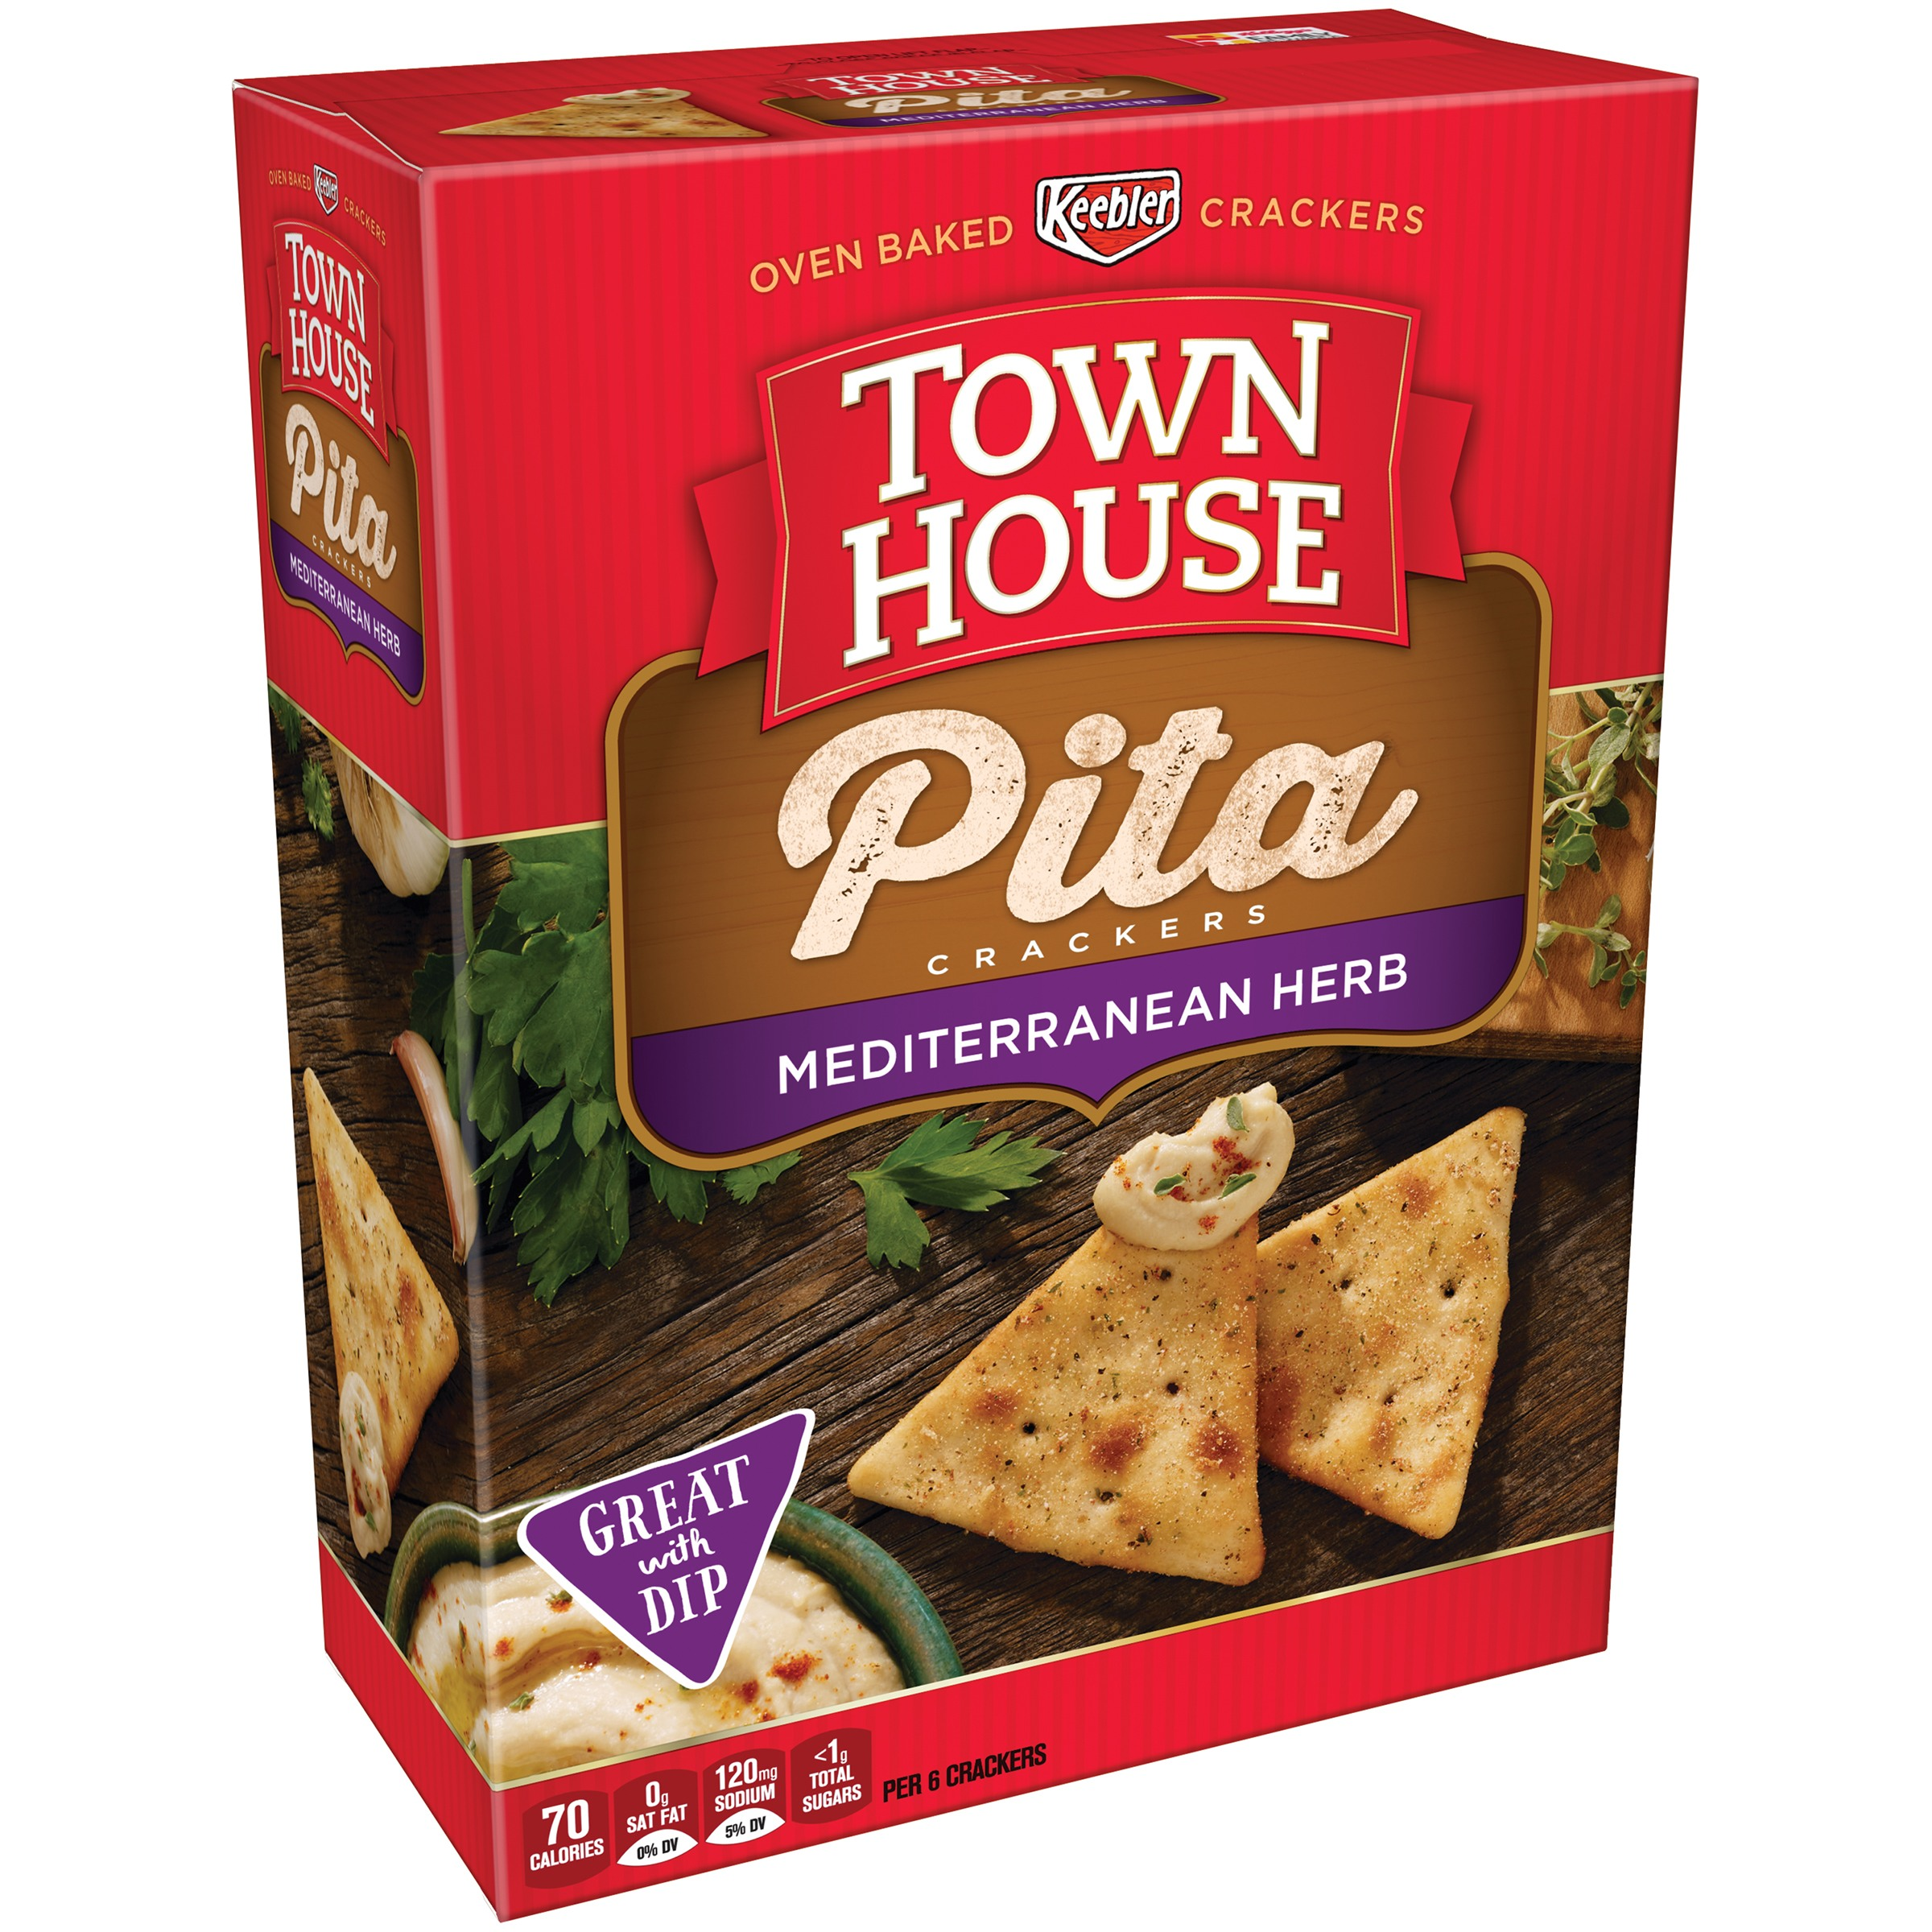 Keebler Town House Pita Crackers, Mediterranean Herb, 9.5 Oz (Pack of 2)